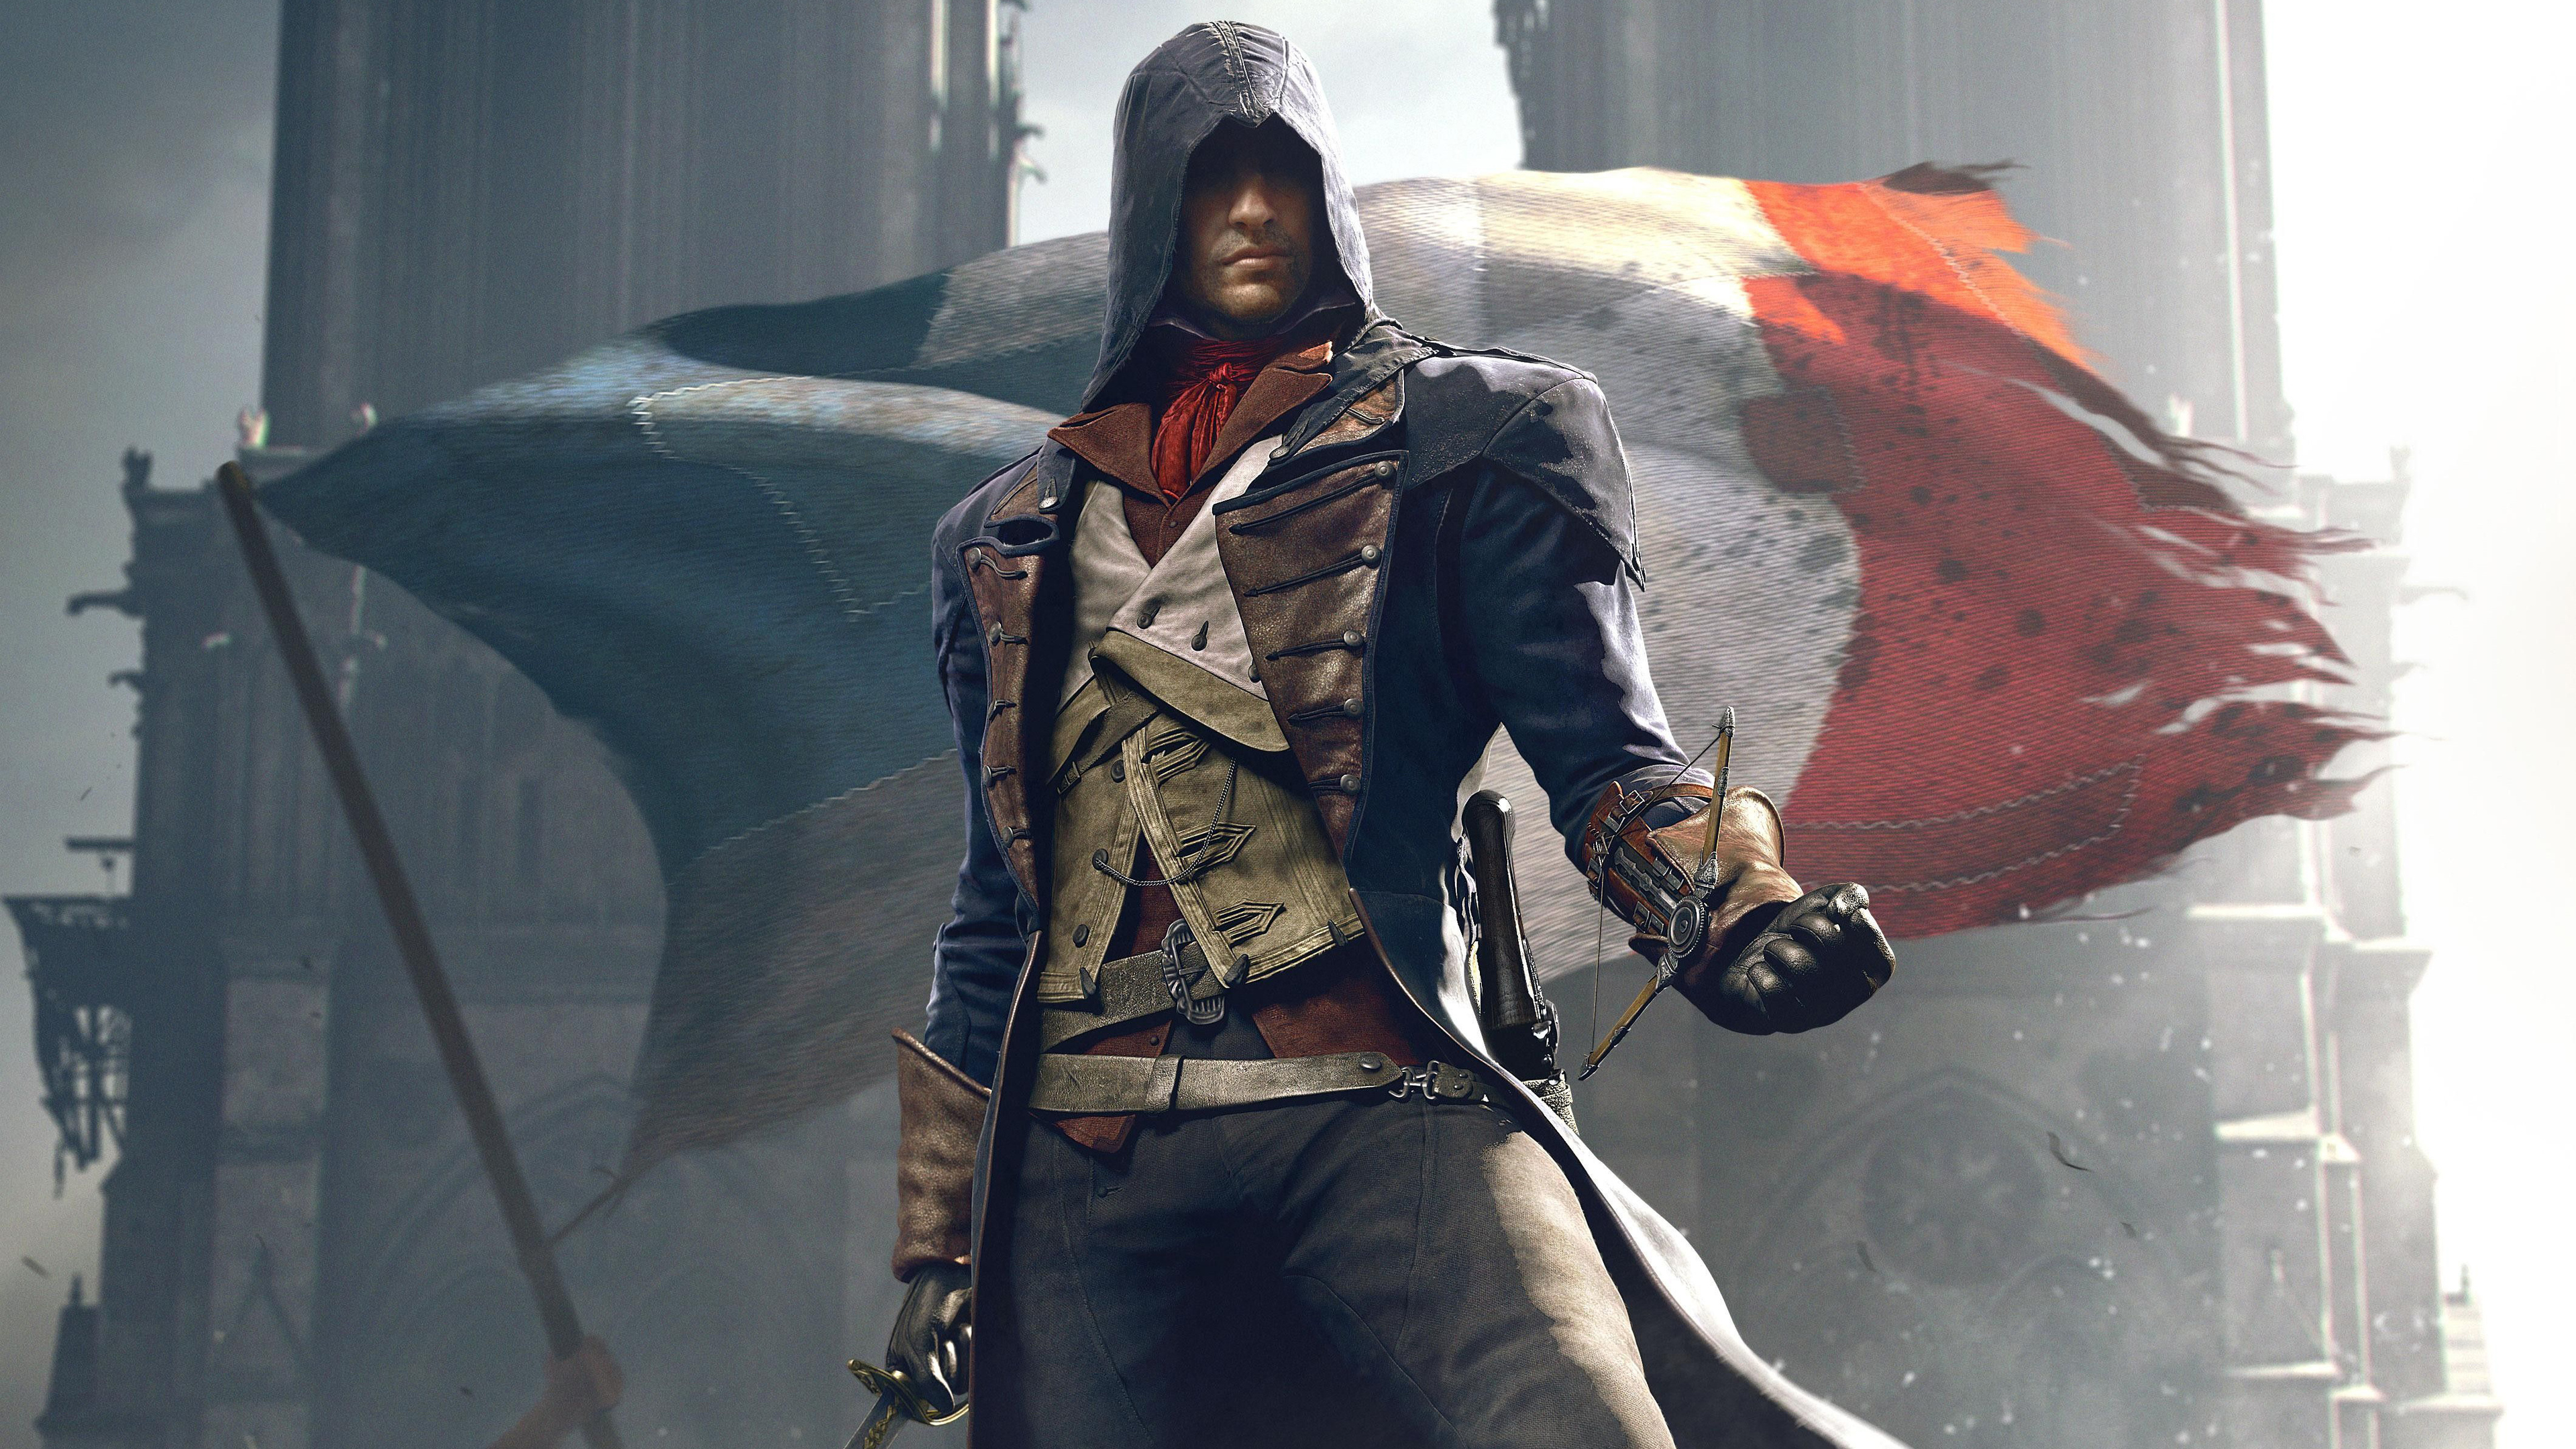 Wallpaper 4k Art Of Assassins Creed Unity 4k 4k Wallpapers Artist